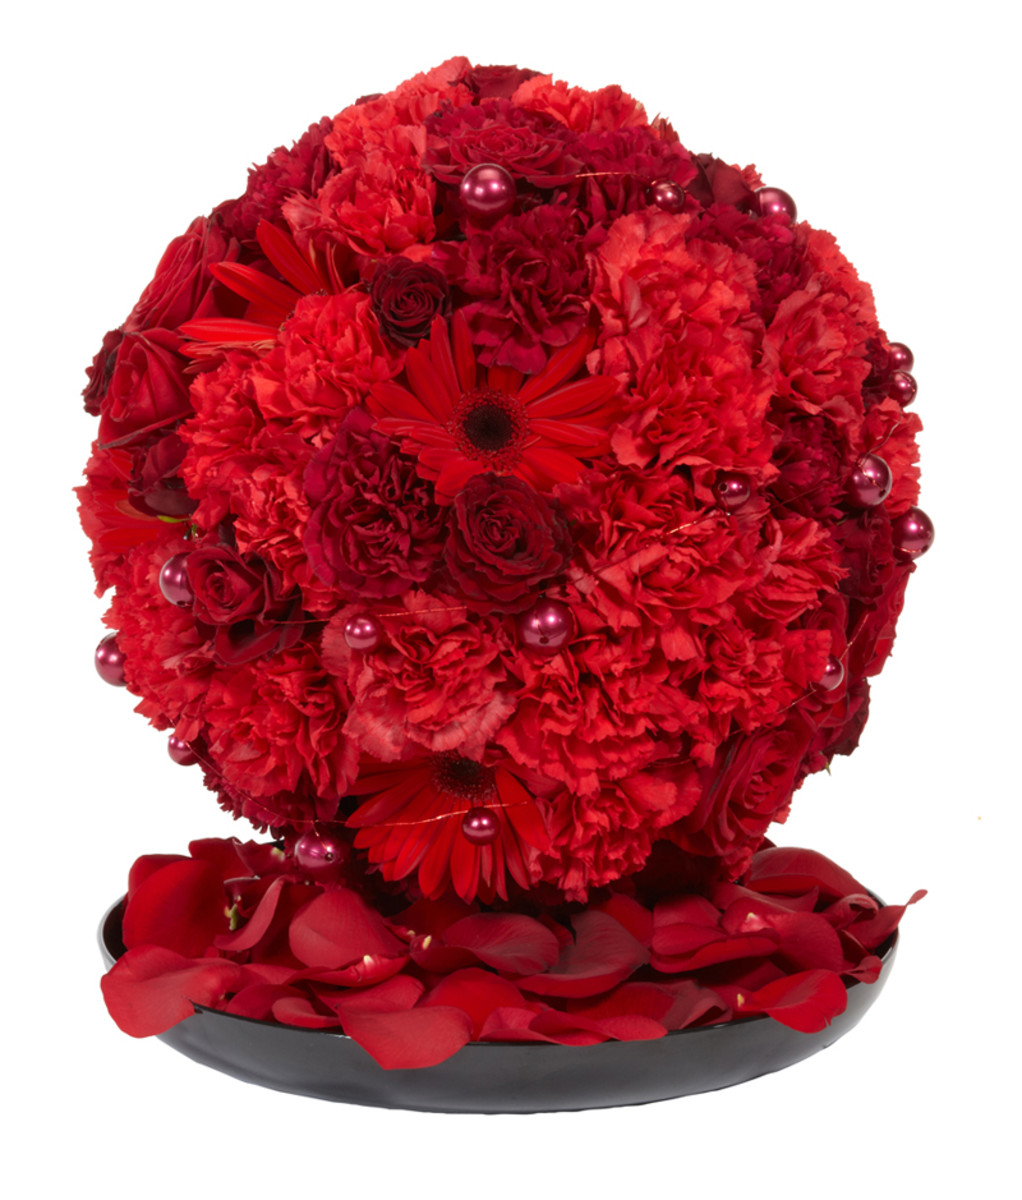 A foam sphere, filled with different red flowers and placed on a mirror.